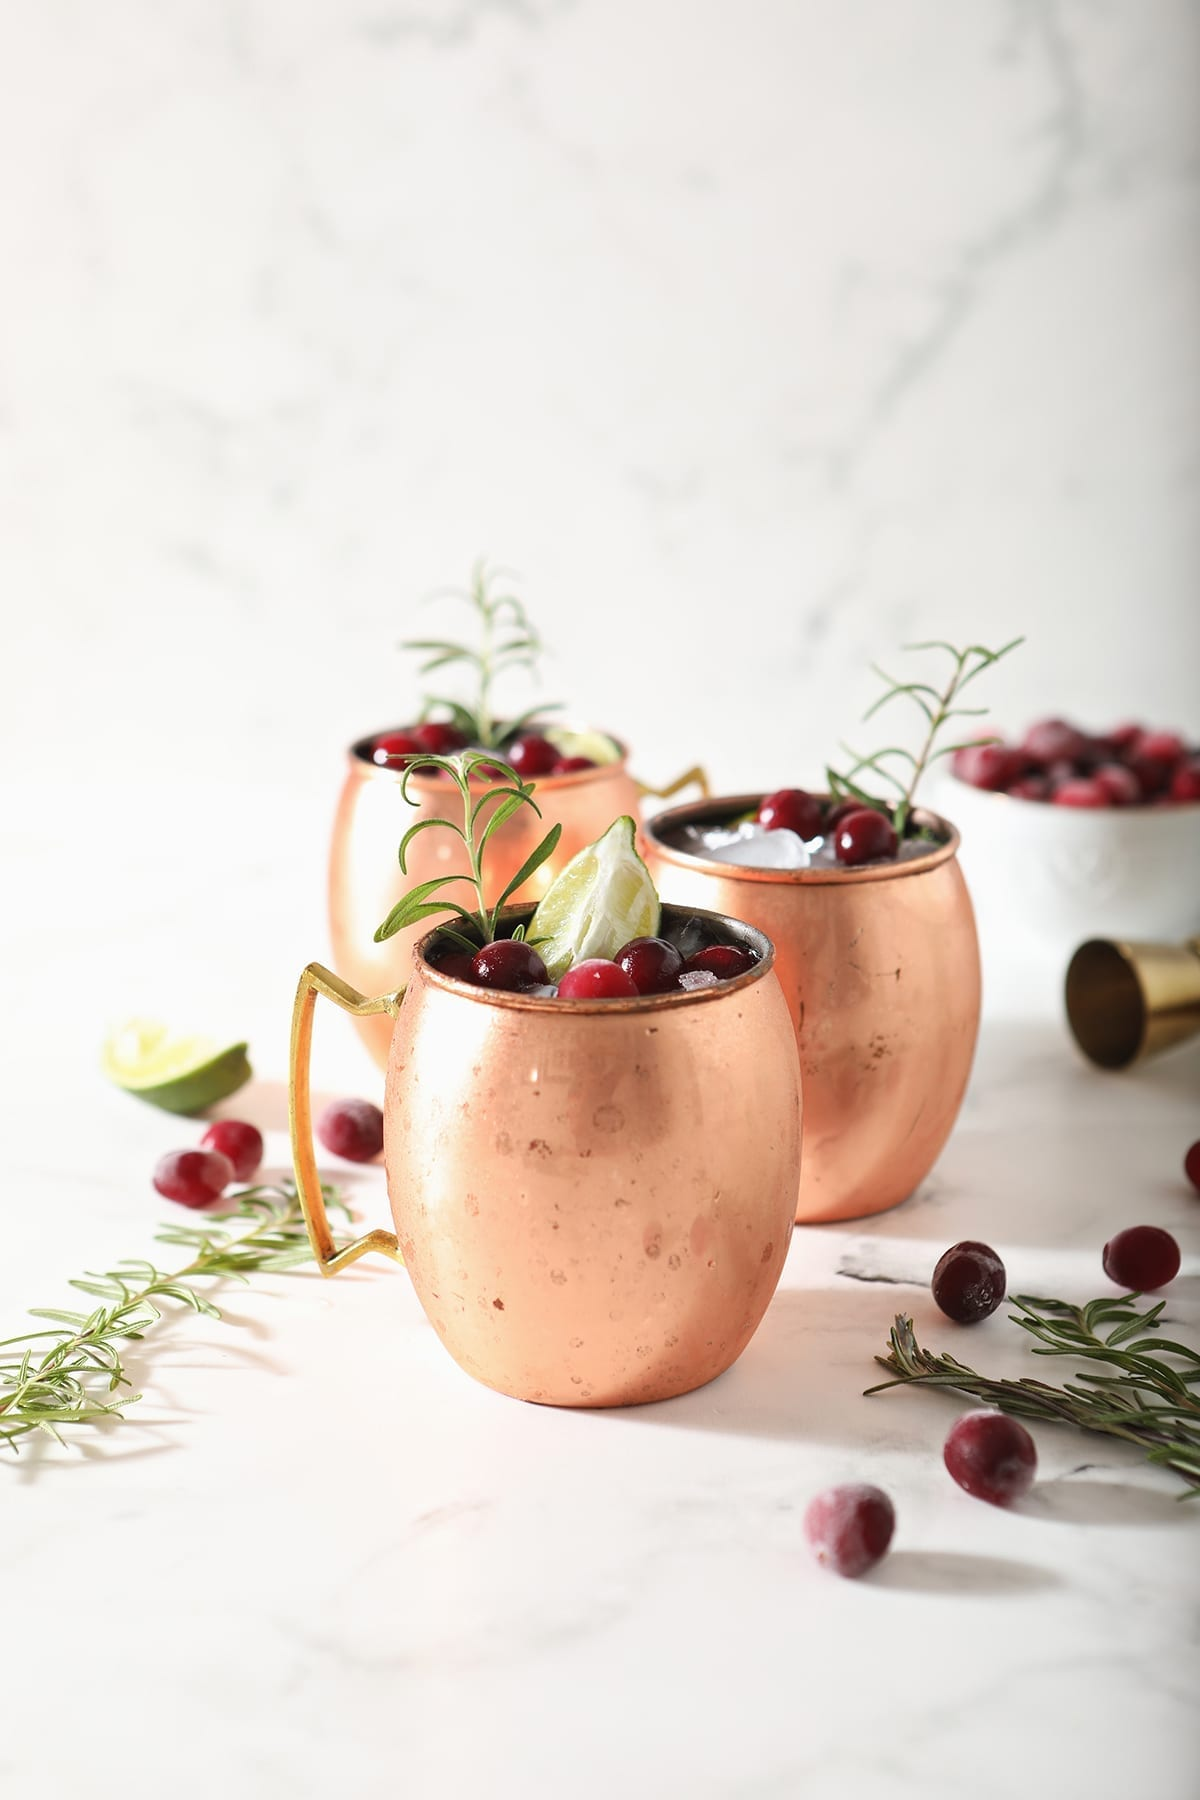 Three Cranberry Moscow Mules in copper cups sit on marble next to sprigs of rosemary and fresh cranberries